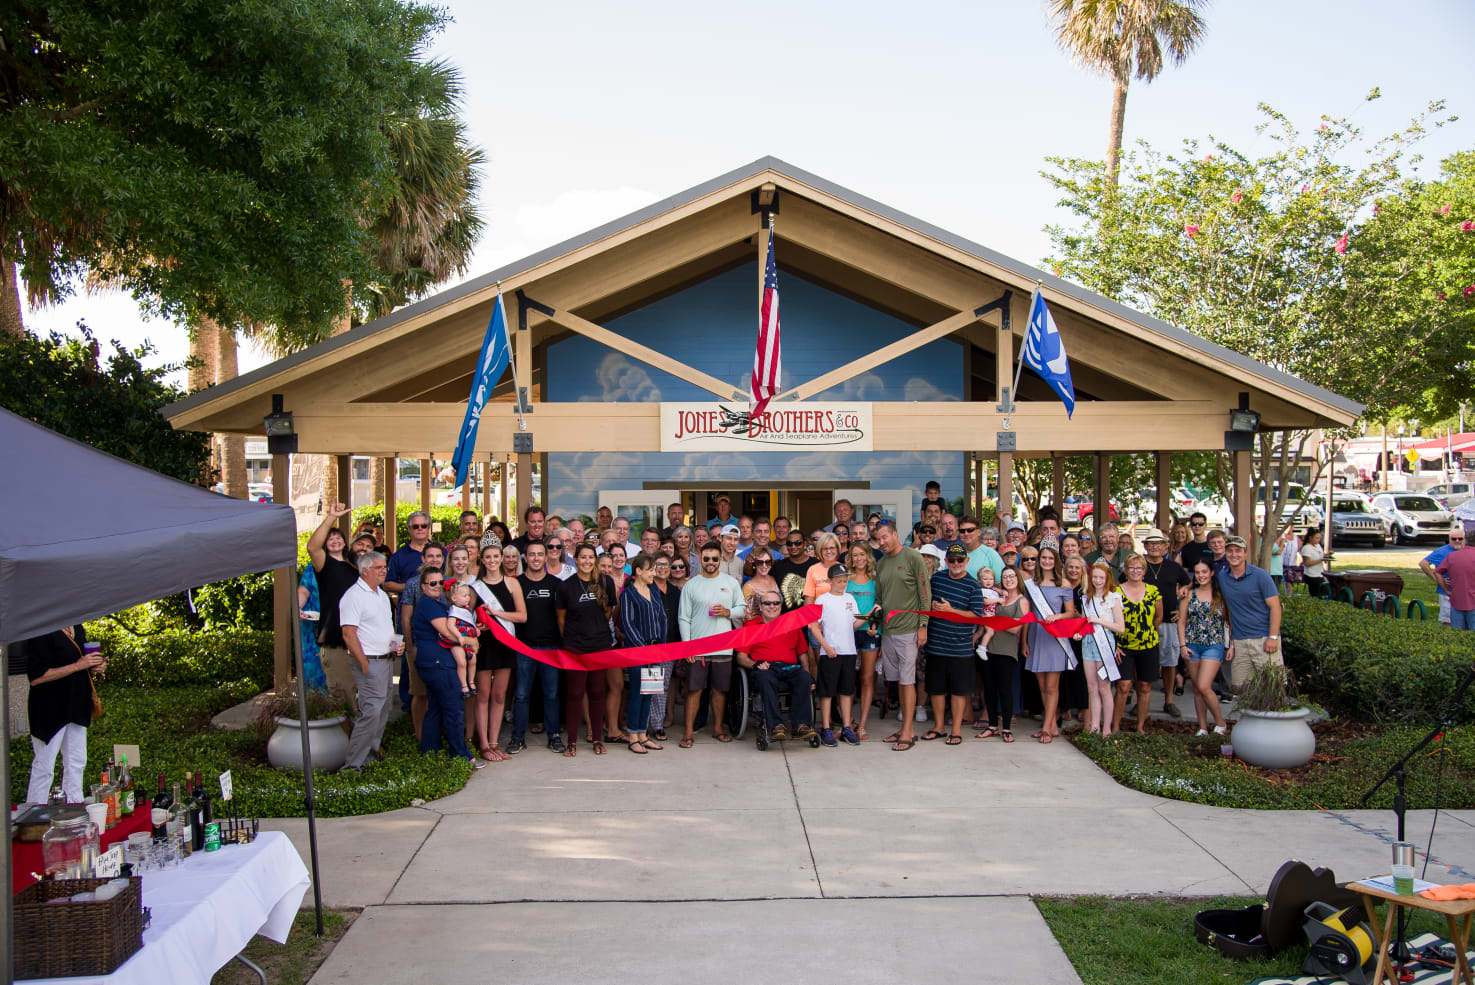 Jones Brothers & Co. Grand Opening & Ribbon Cutting Ceremony